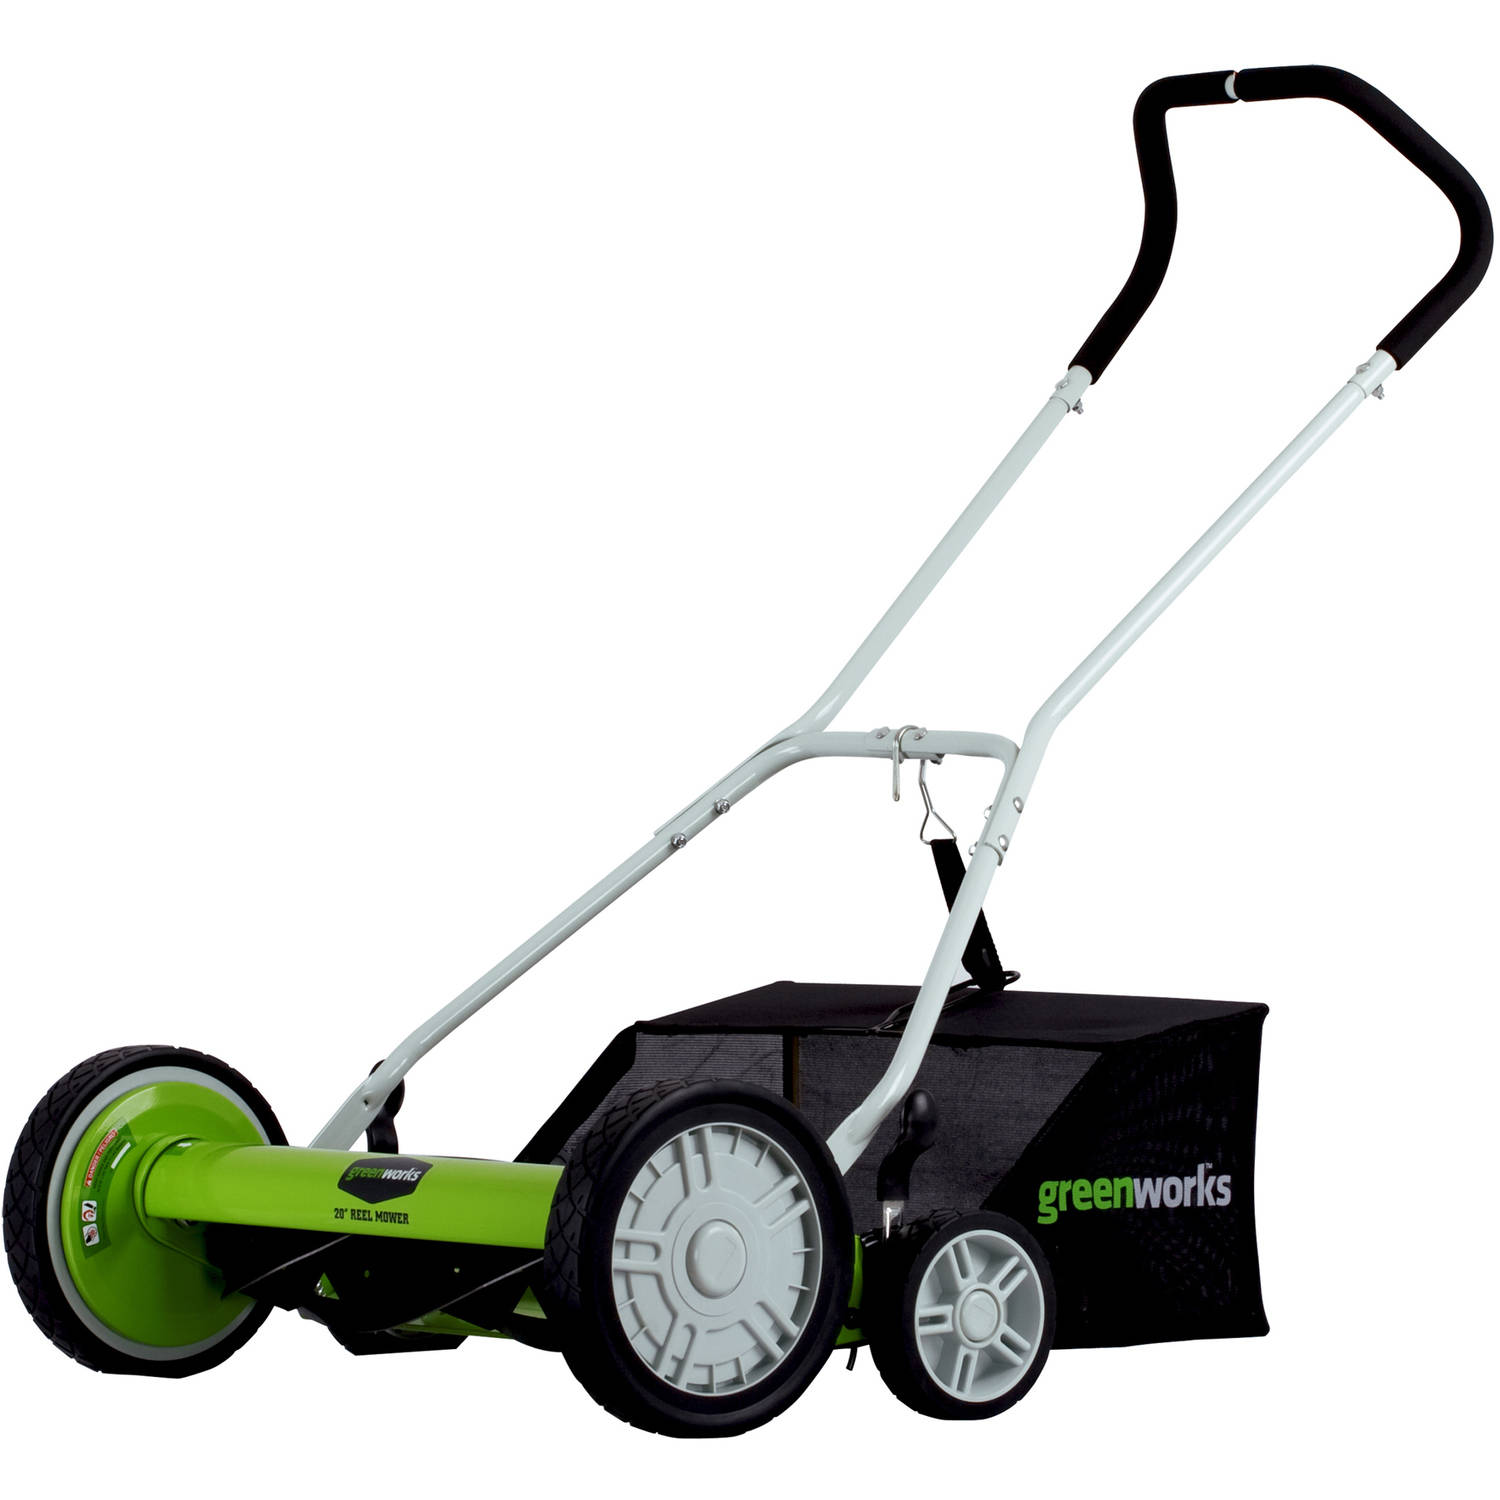 "Greenworks 5-Blade 20"" Reel Mower"